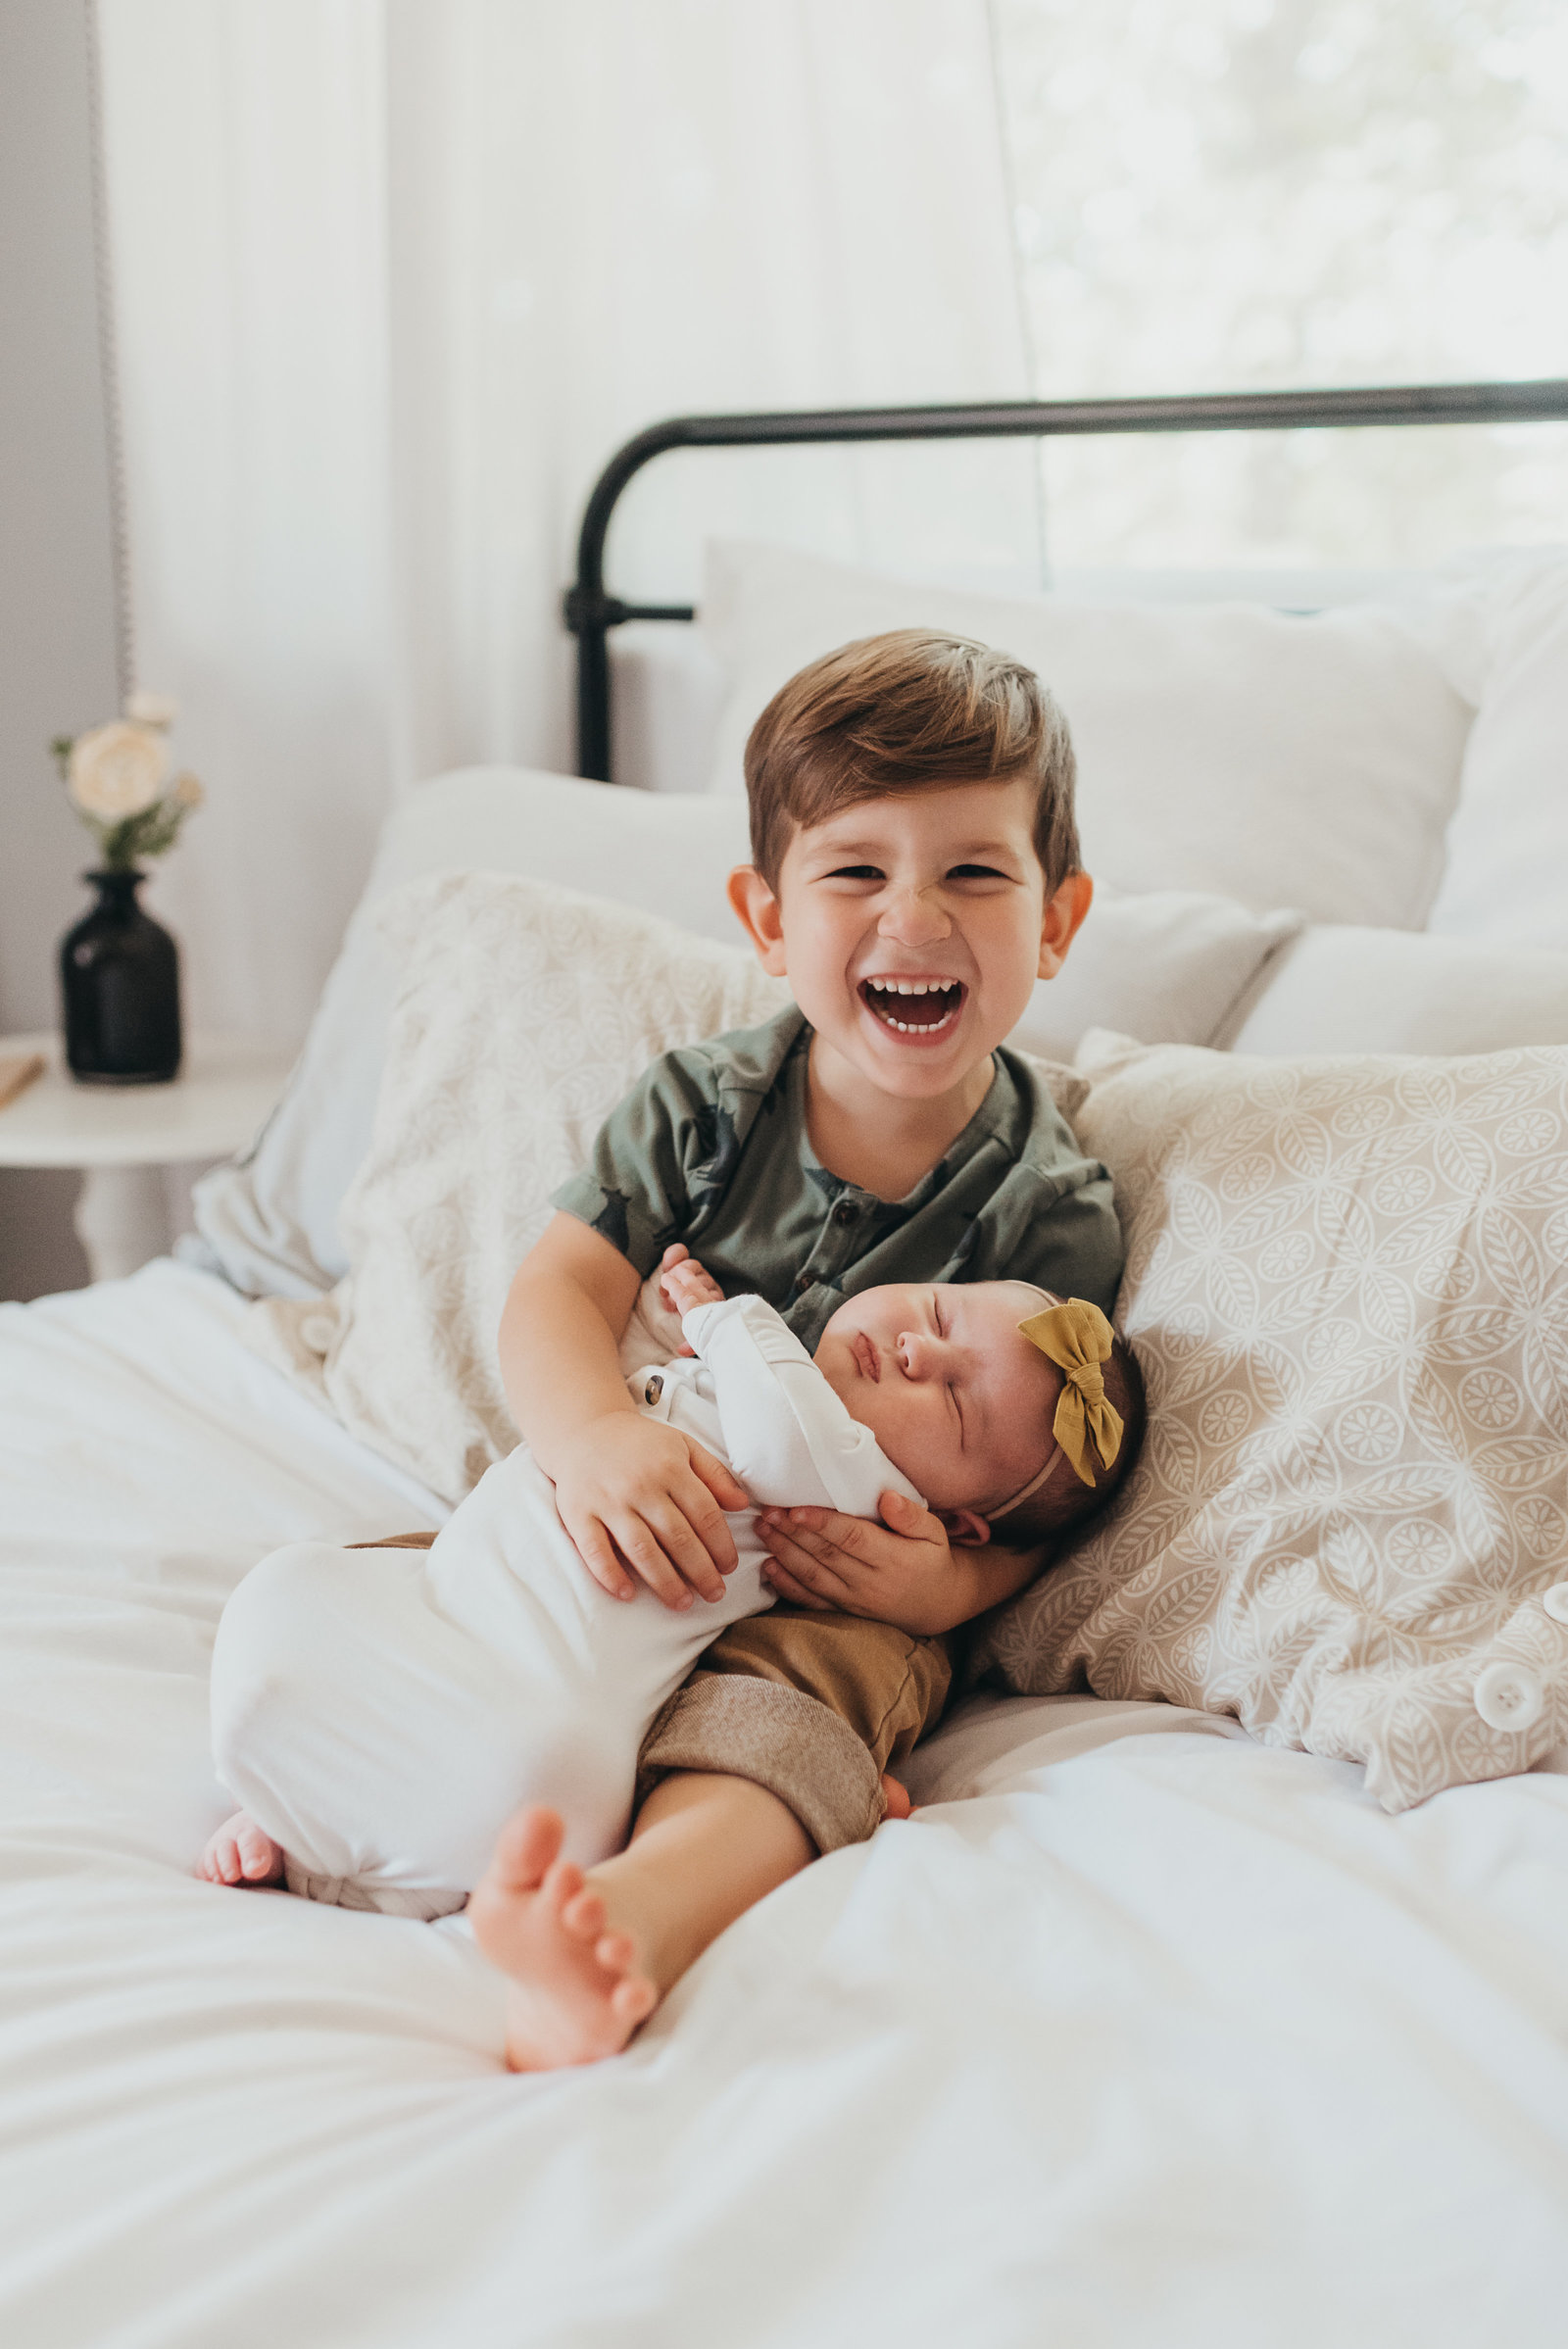 brother holding baby sister on a bed